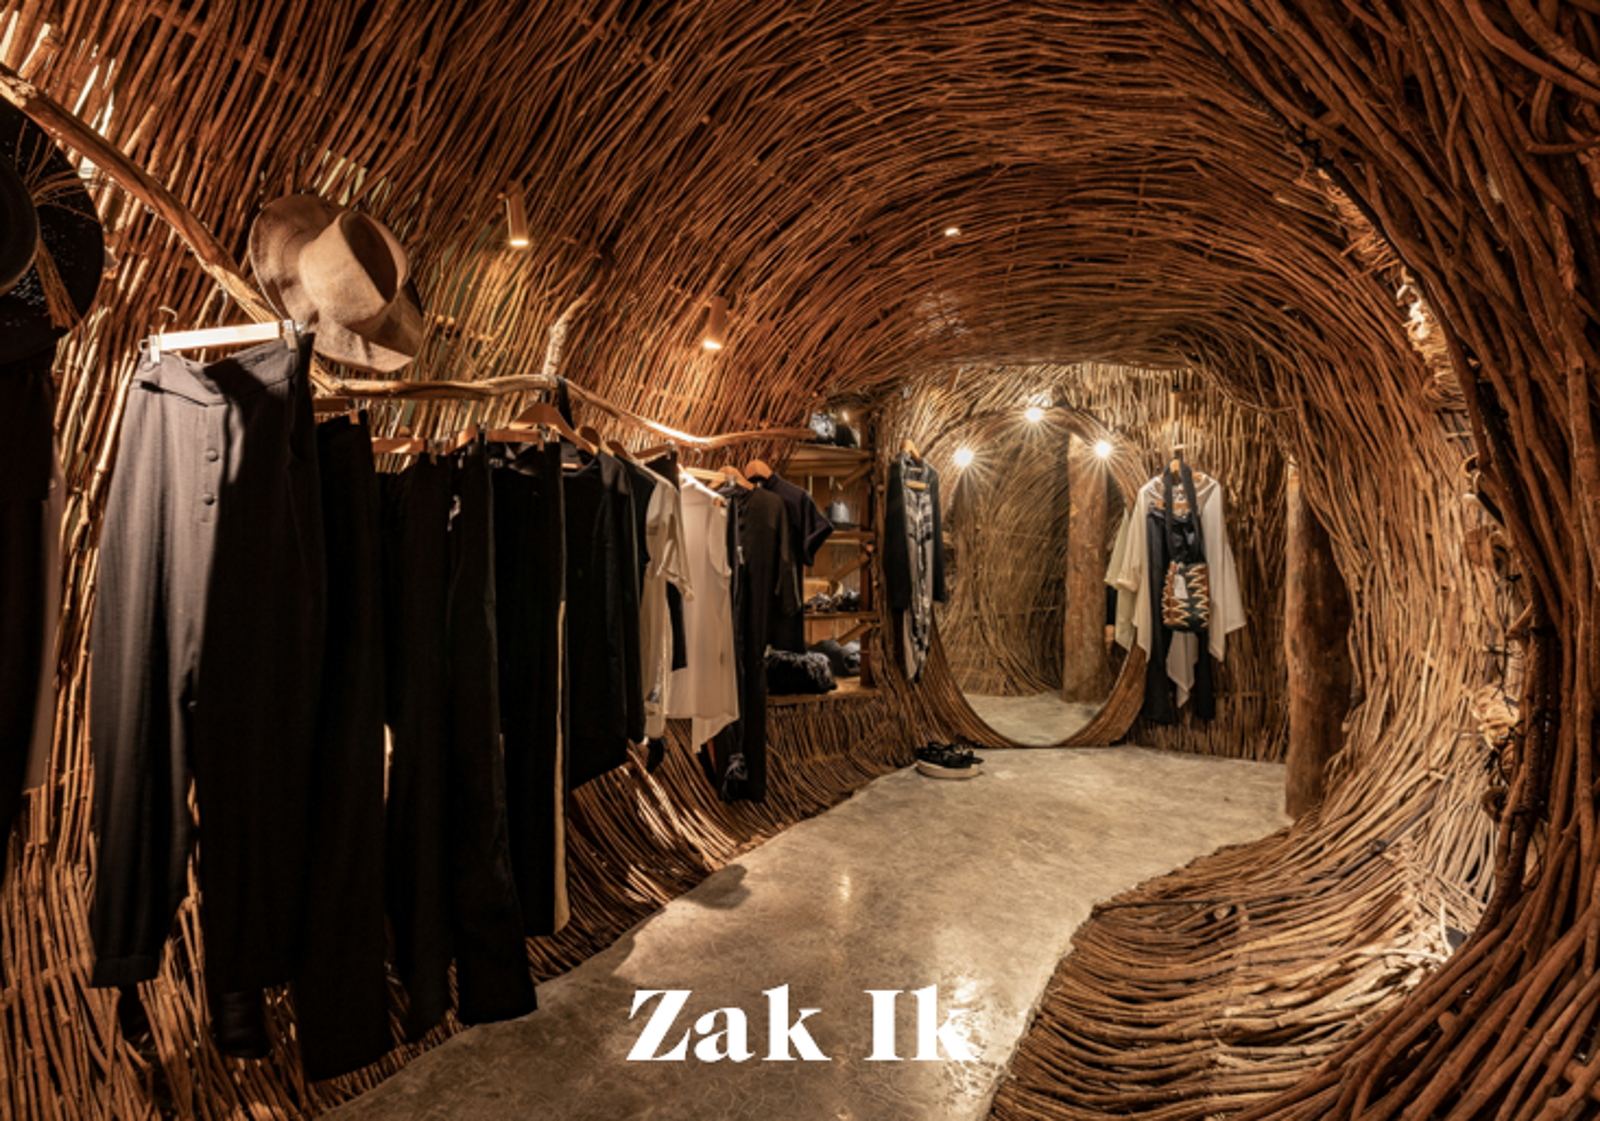 zak ik store tour architecture missions mmm